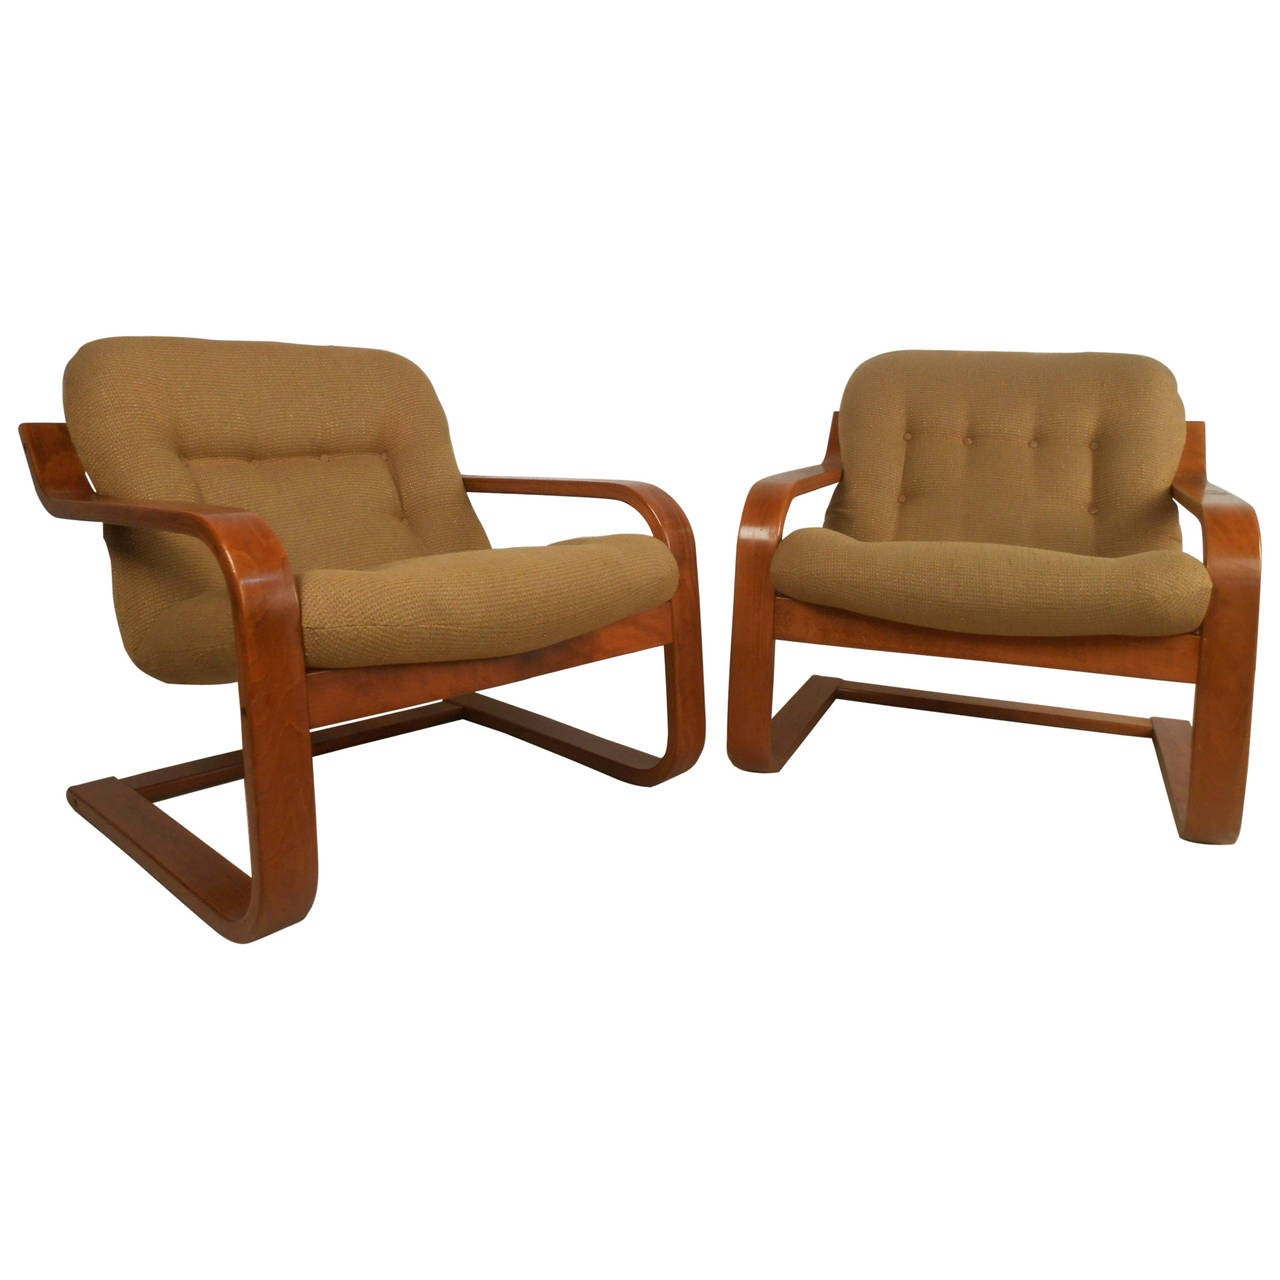 Pair of midcentury scandinavian modern westnofa bentwood for Contemporary seating chairs